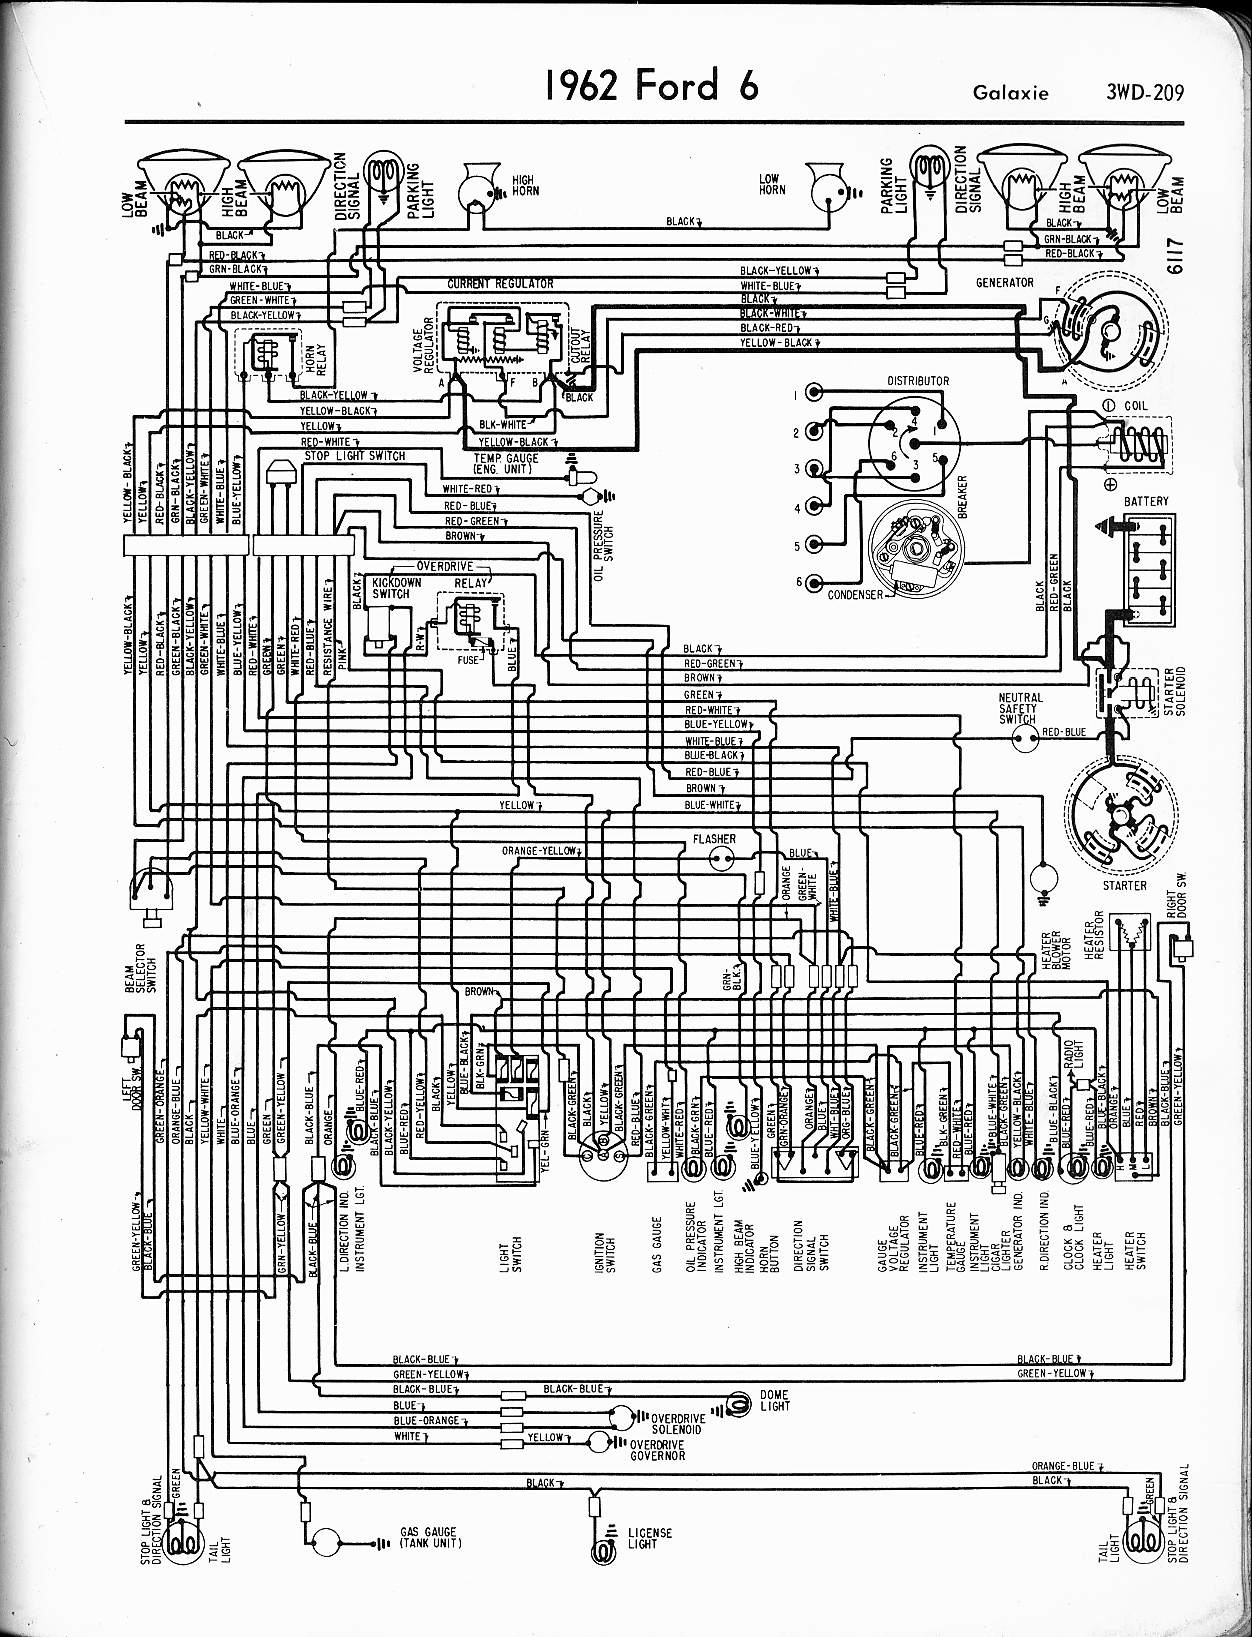 1968 Ford Galaxie Wiring Diagram Archive Of Automotive F250 Diagrams 1962 Detailed Rh Standrewsthorntonheath Co Uk